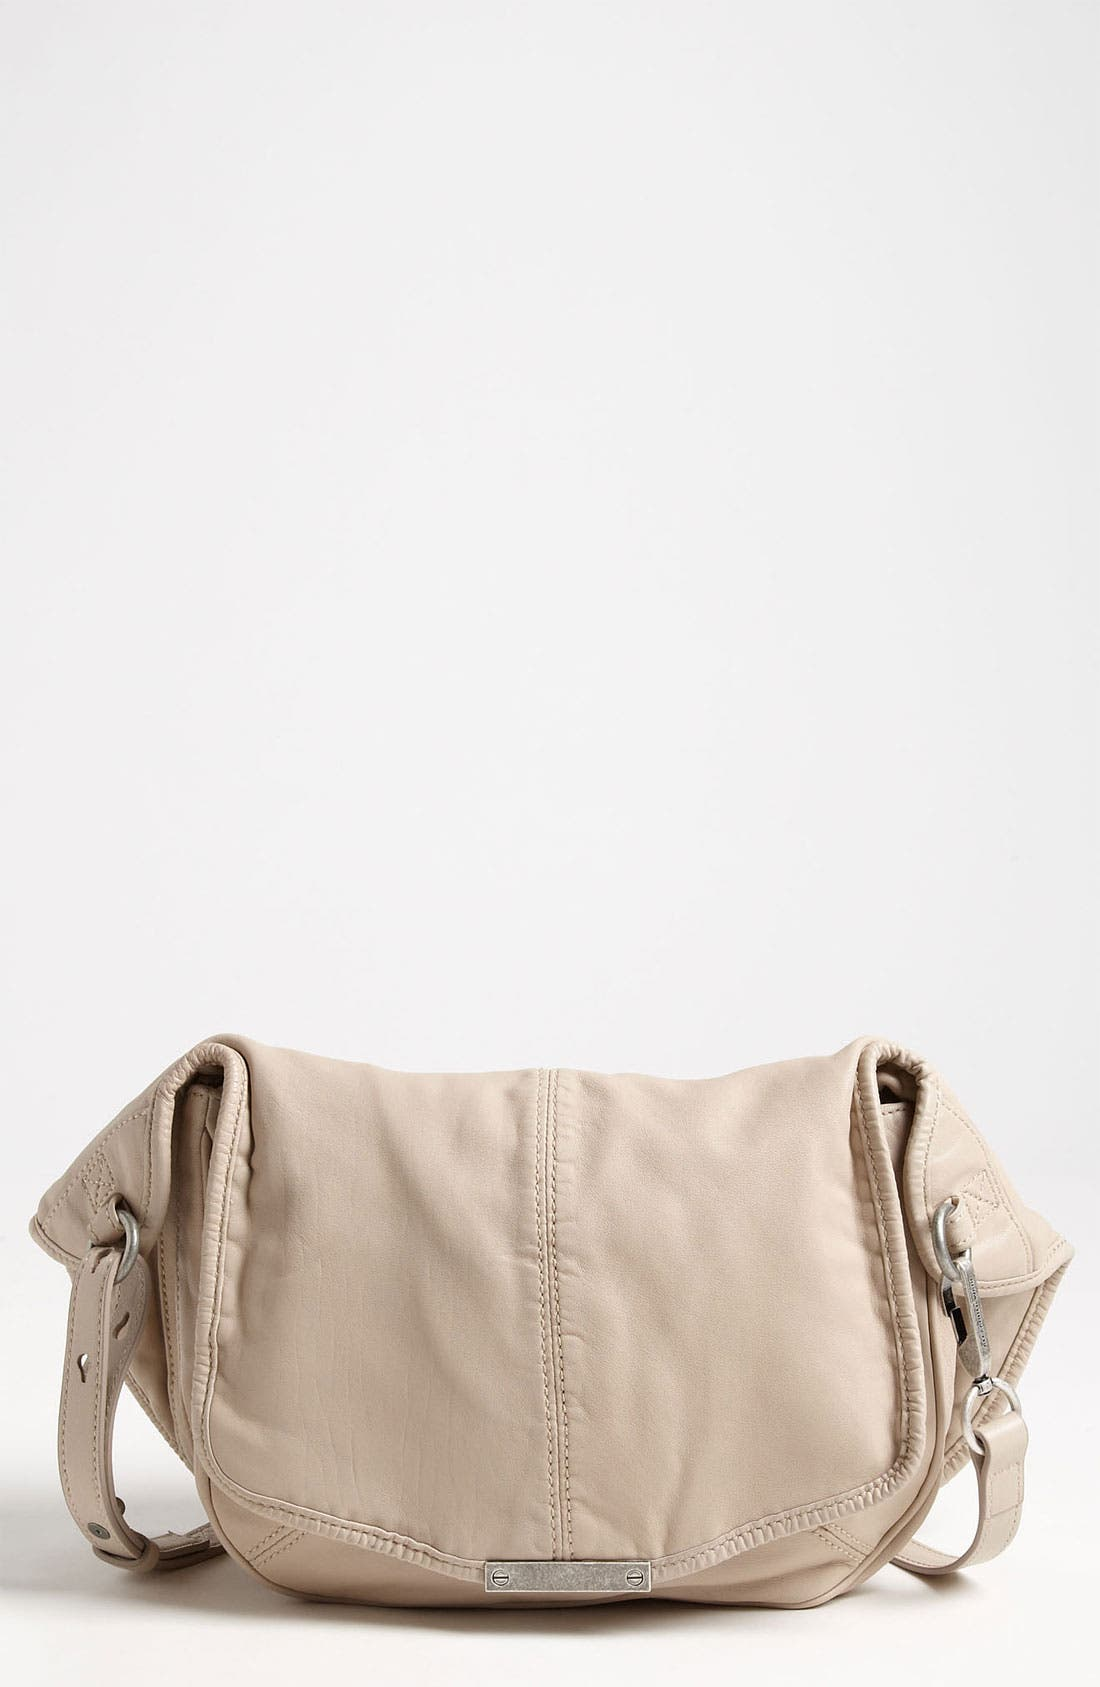 Main Image - Alexander Wang 'Iris' Leather Shoulder Bag